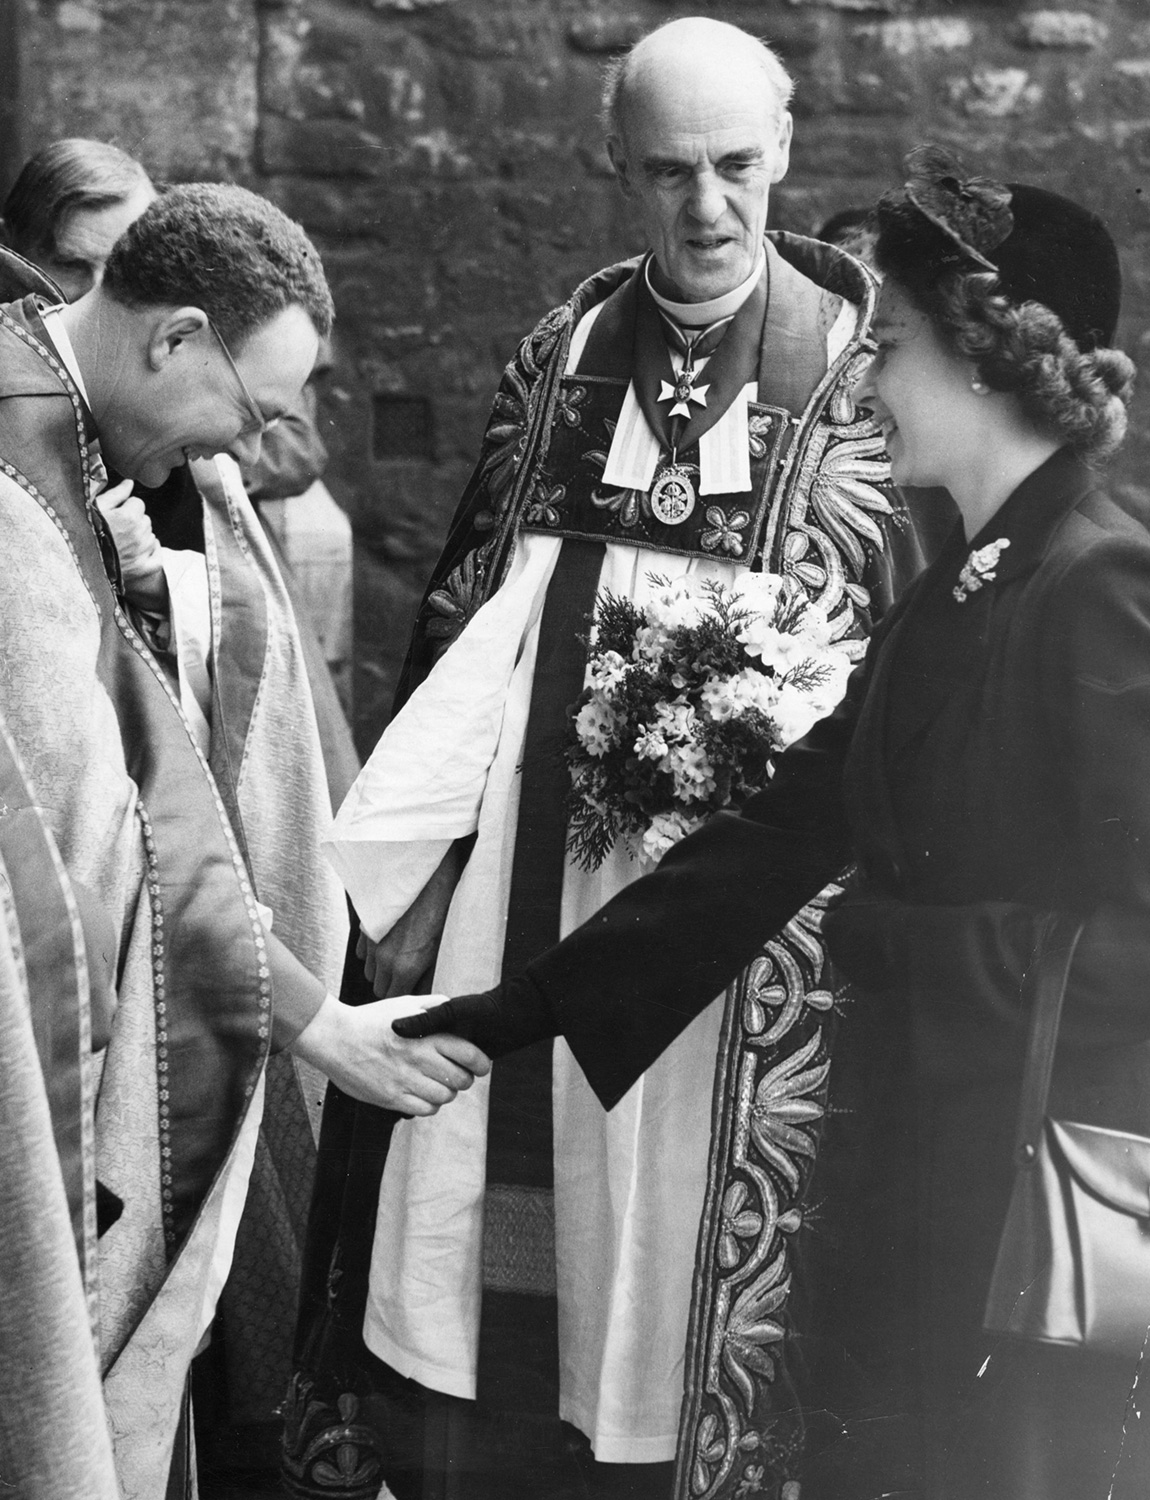 Queen Elizabeth II is greeted by members of the Clergy on her arrival at Westminster Abbey to take part in the traditional Maundy Thursday ceremony, her first public engagement since the beginning of her reign. Centre is Dr. Alan Don, Dean of Westminster